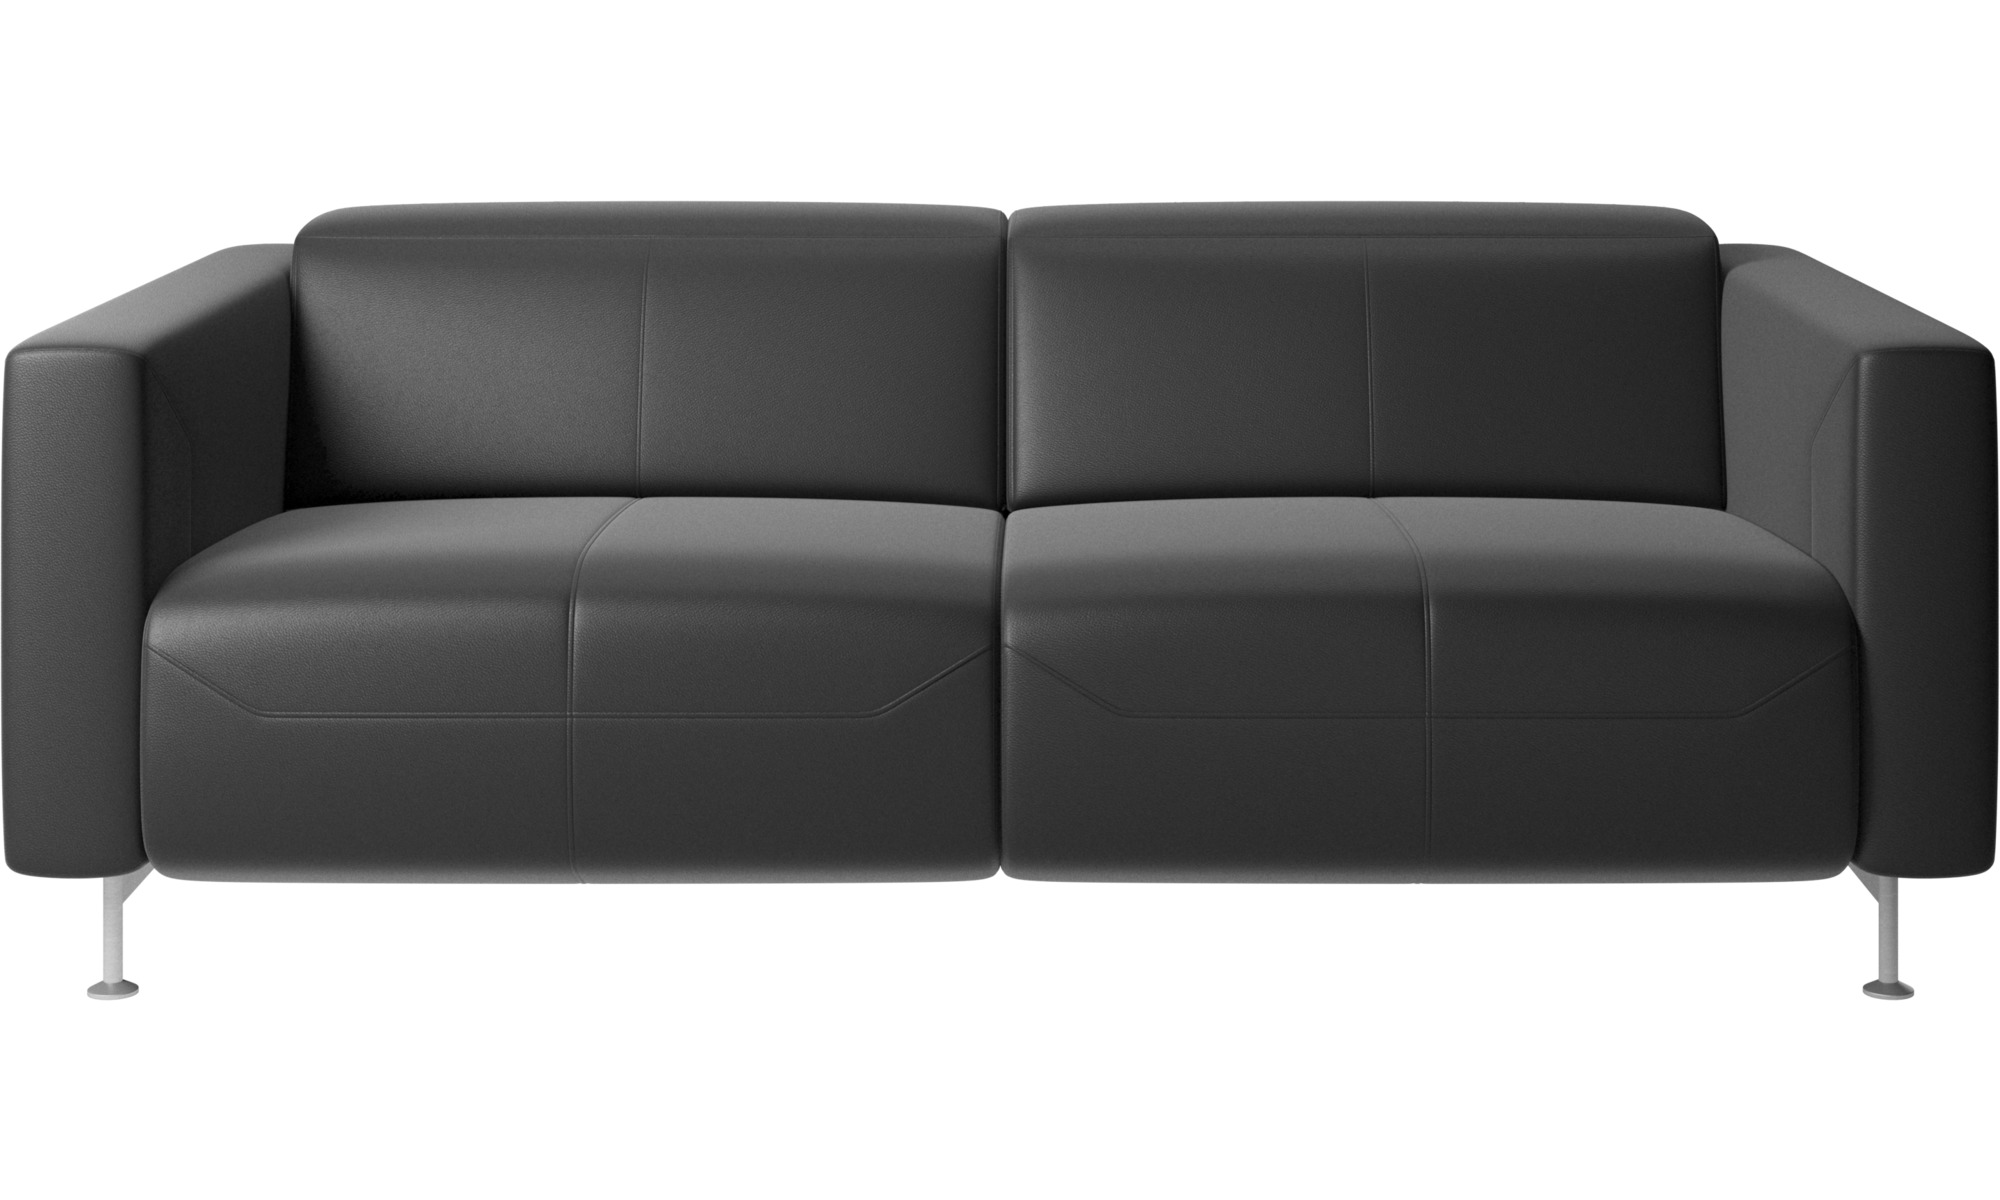 Astounding 2 Seater Sofas Parma Reclining Sofa Boconcept Machost Co Dining Chair Design Ideas Machostcouk